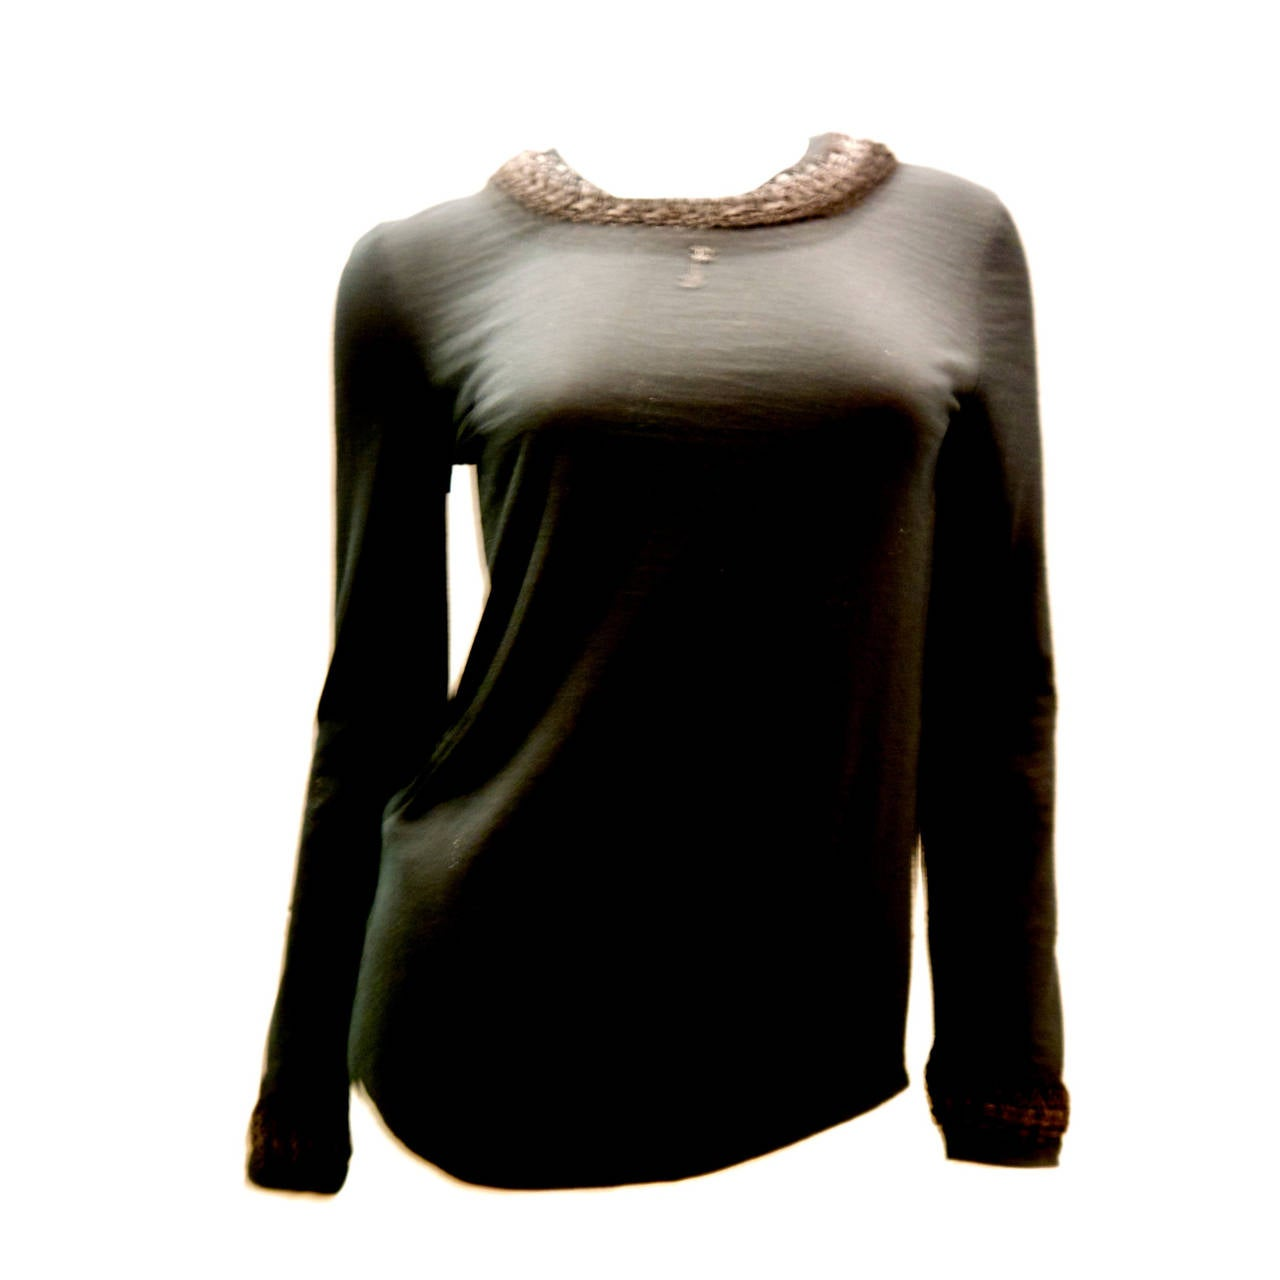 New Chanel Black Top with Intricate Woven Lambskin Collar - Size 36